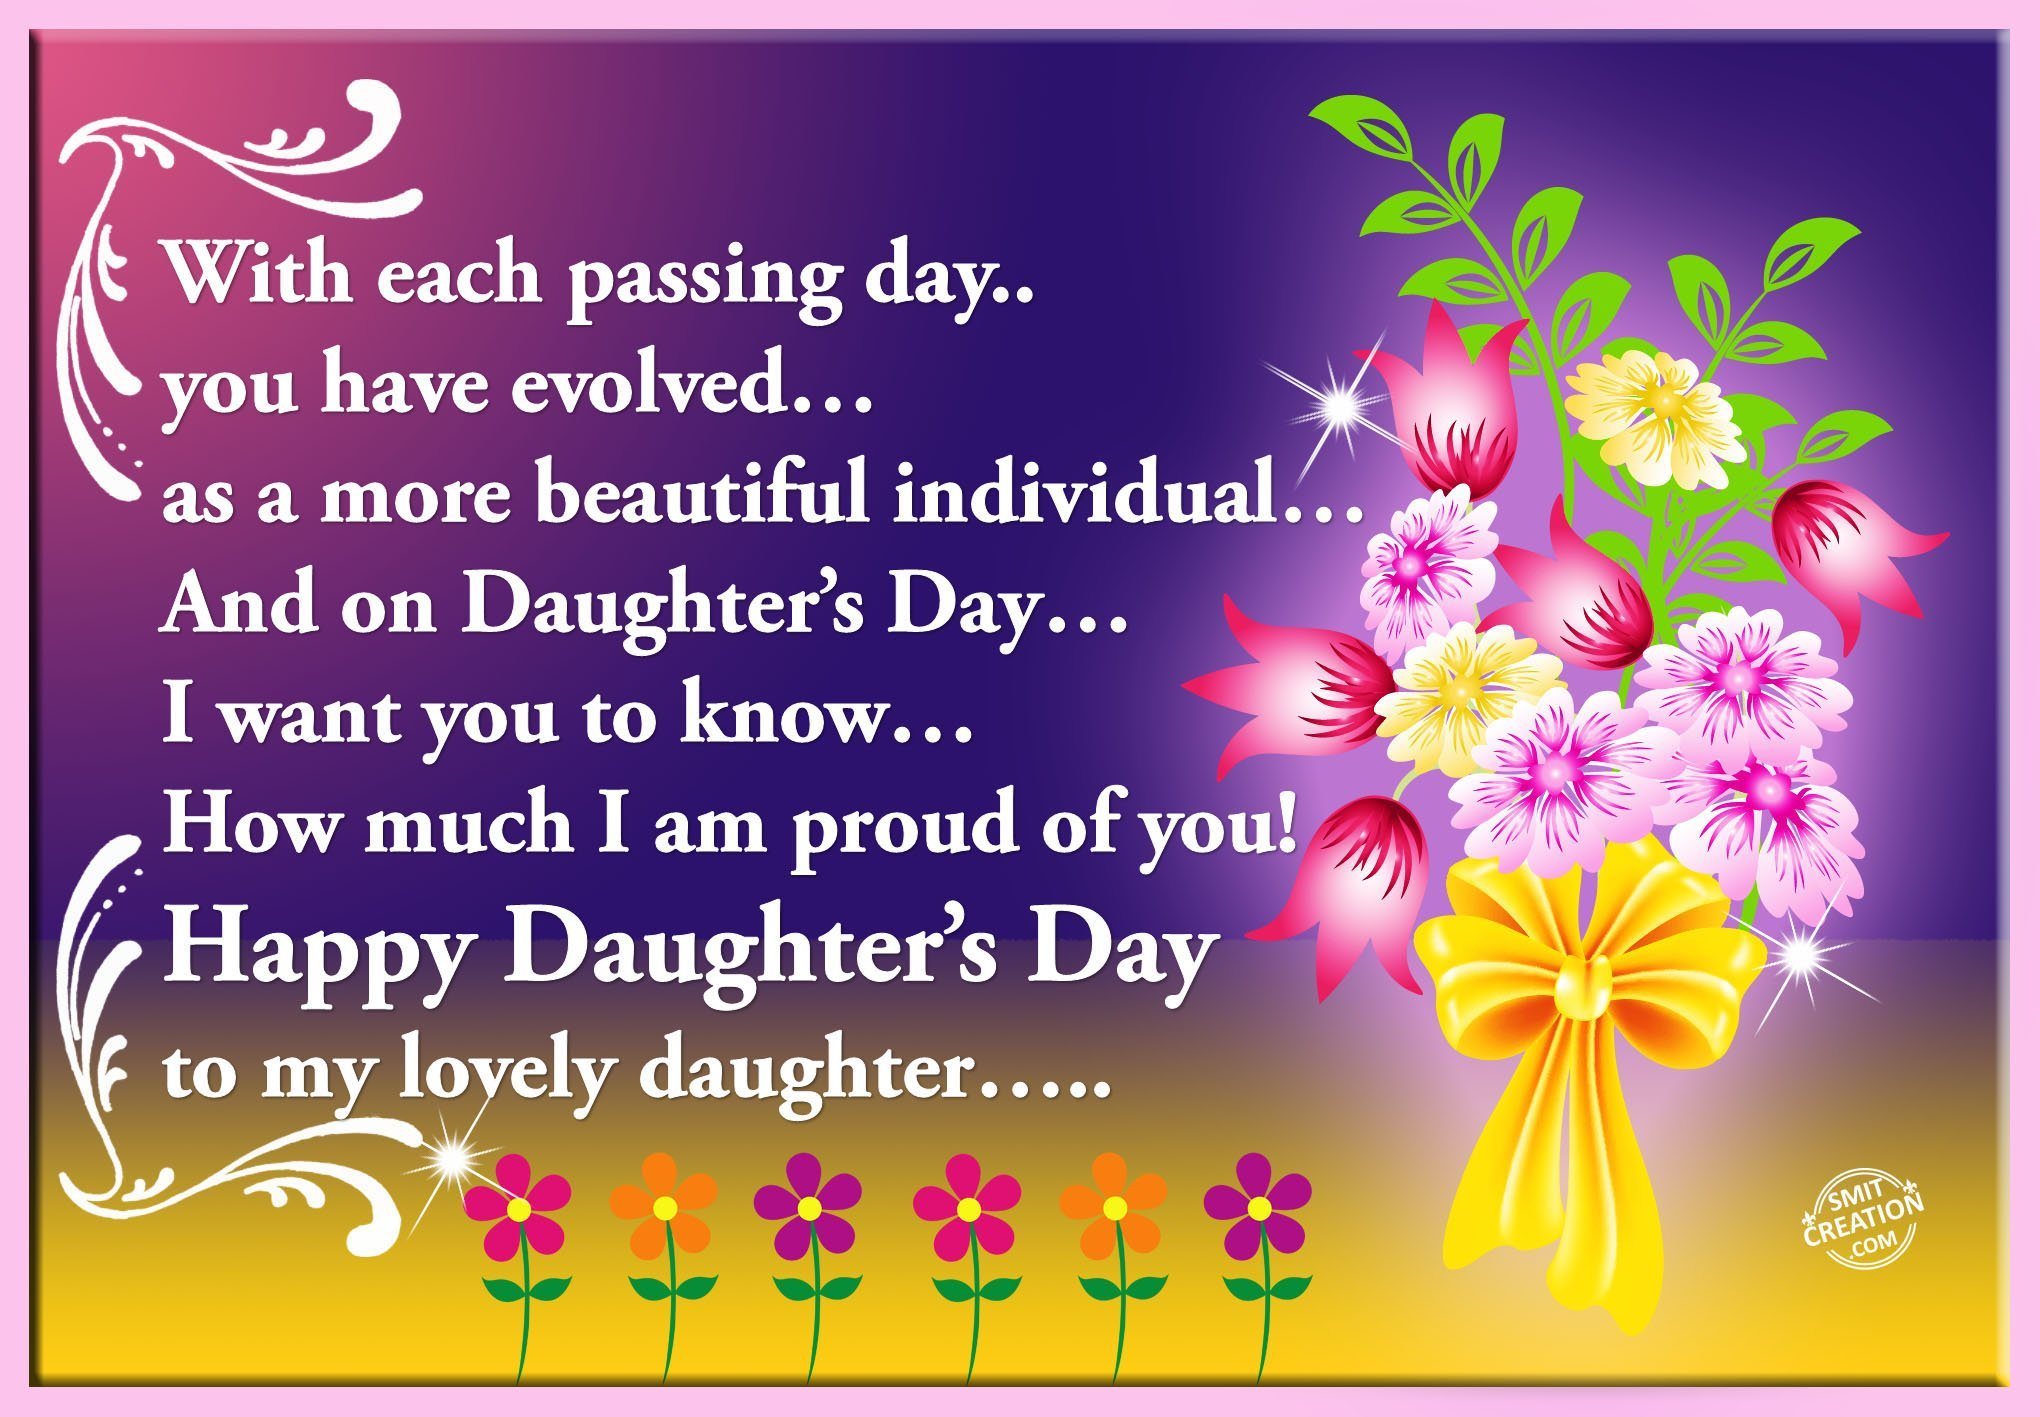 Happy Daughters Day Smitcreationcom